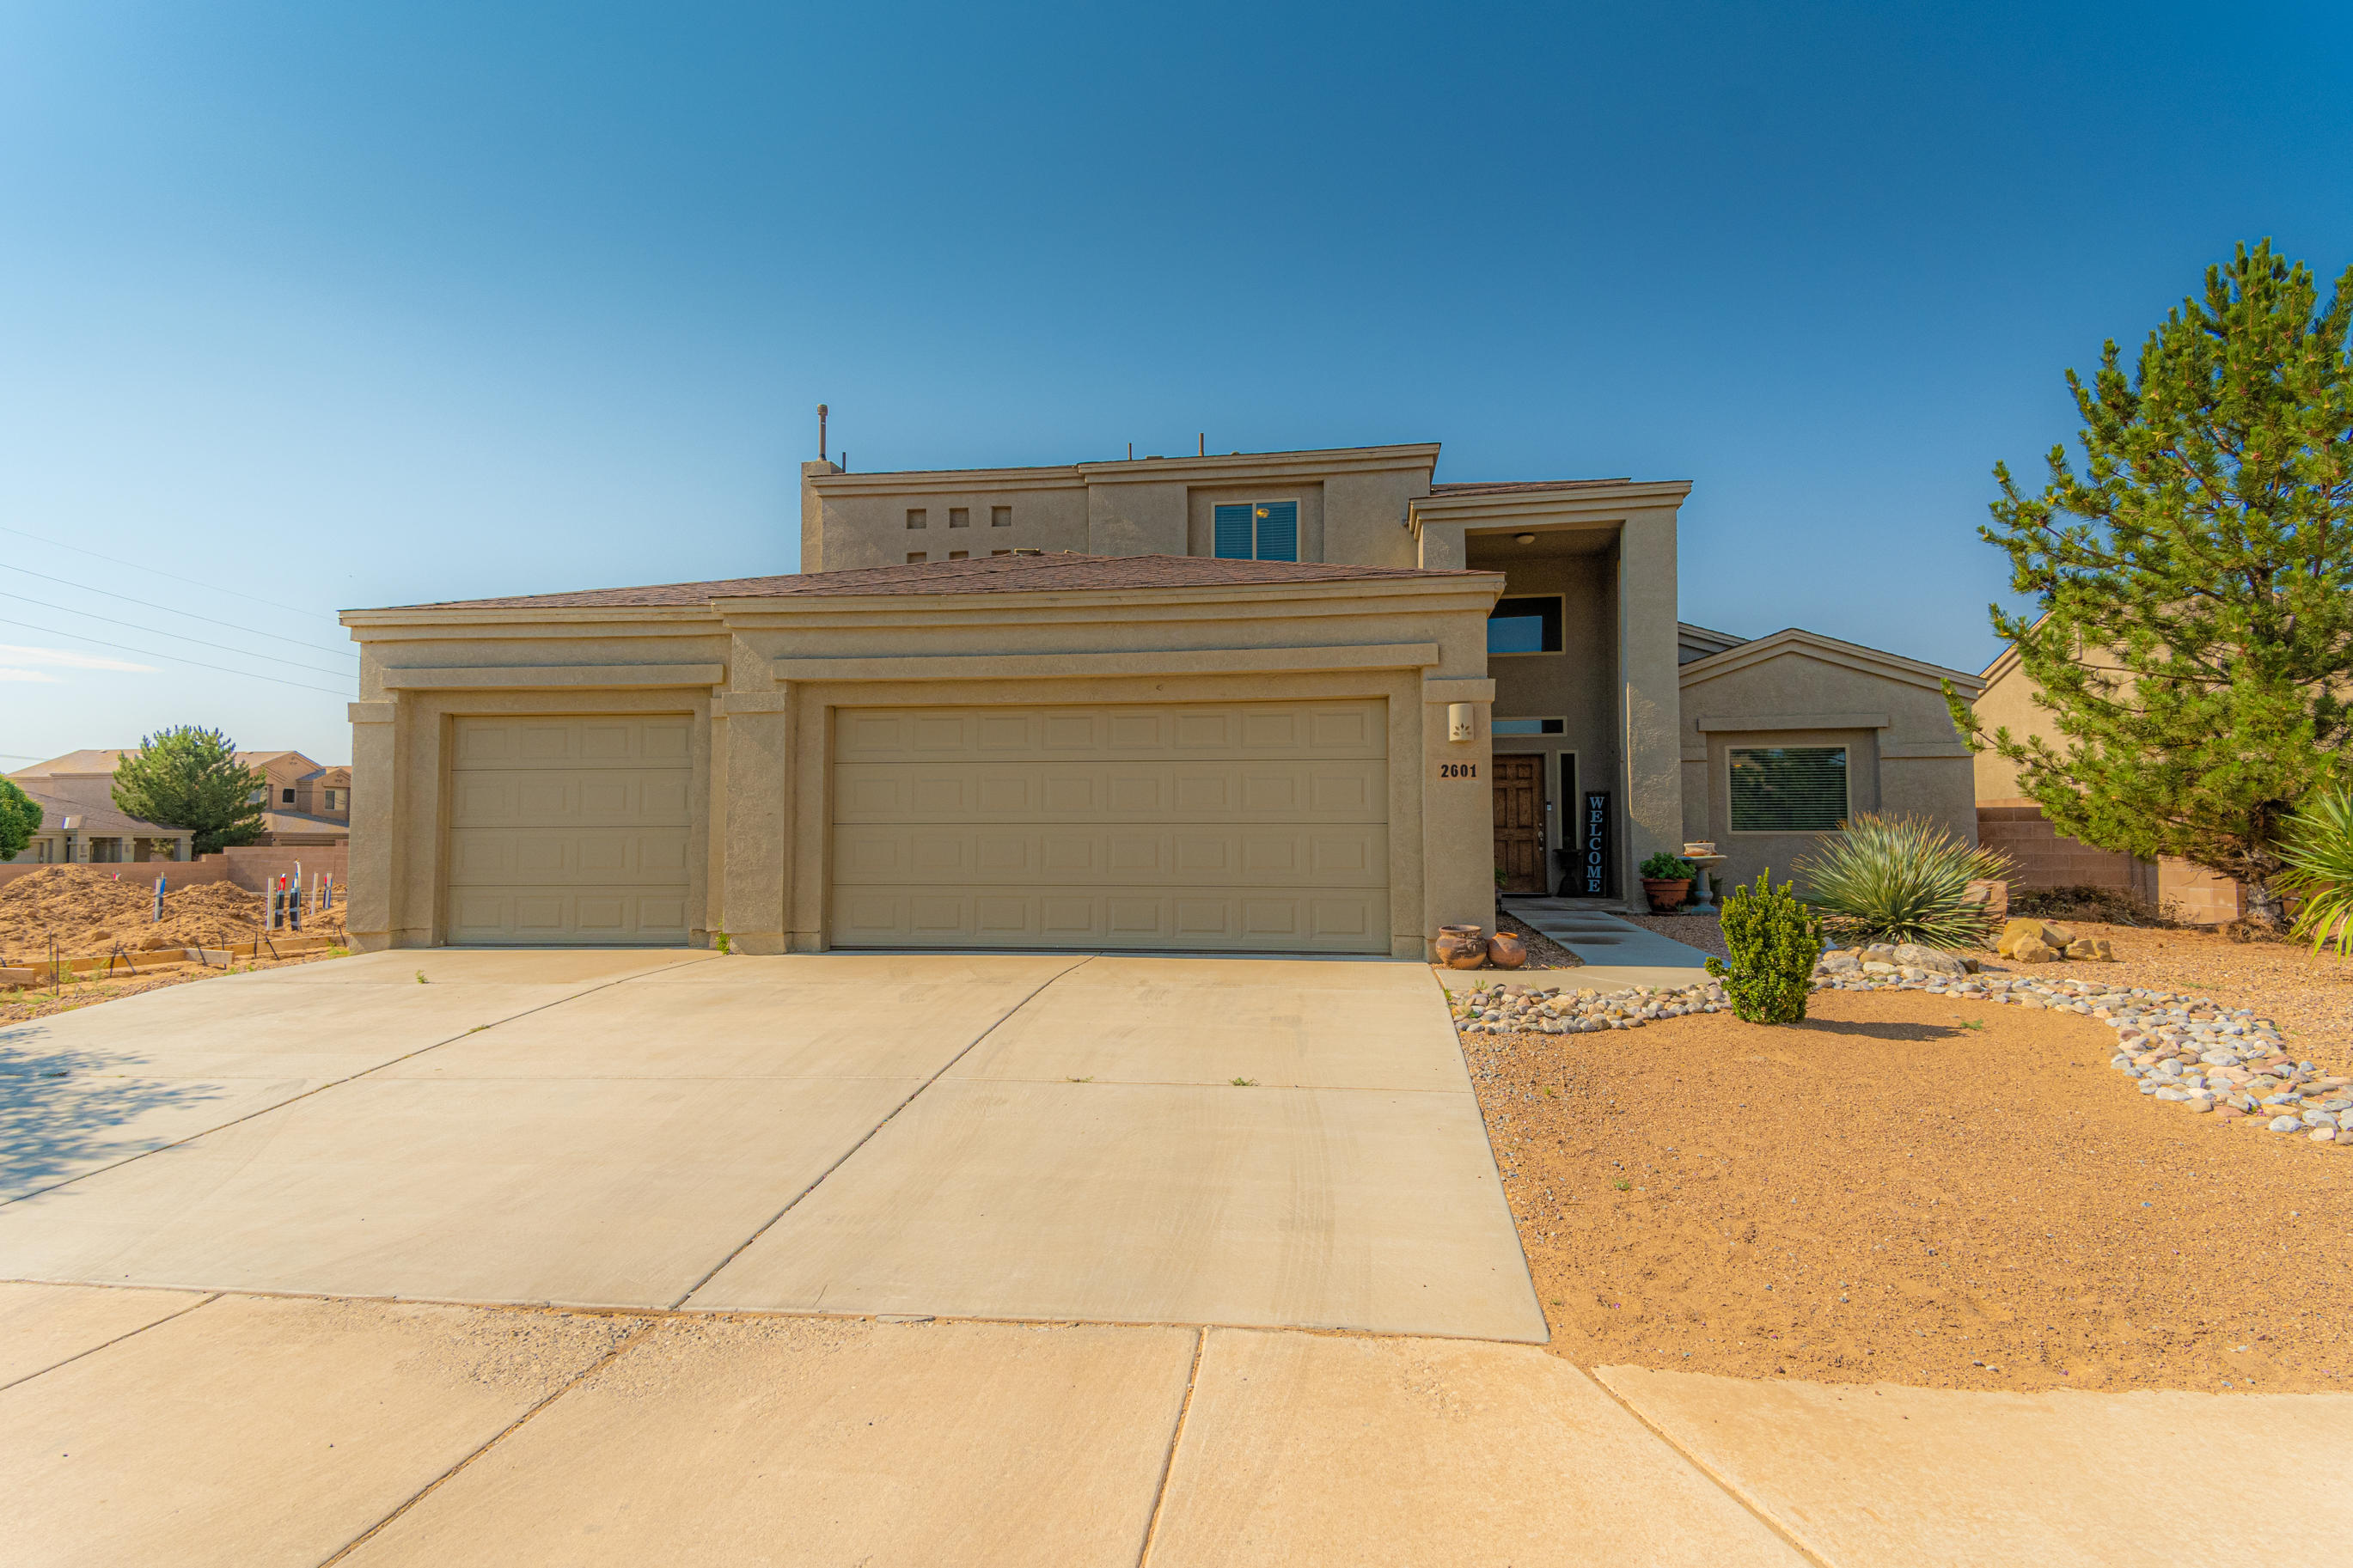 Great opportunity to own this beautiful home in one of Los Lunas's few gated communities! This well maintained home offers 3 bedrooms--master down stairs, a large open living area, loft and front sitting room or formal dinning. You will not feel limited on space with a large laundry room, storage closet and 3 bathrooms.  Don't forget about the 3 car garage and space for plenty of parking! Call to schedule your showing today.